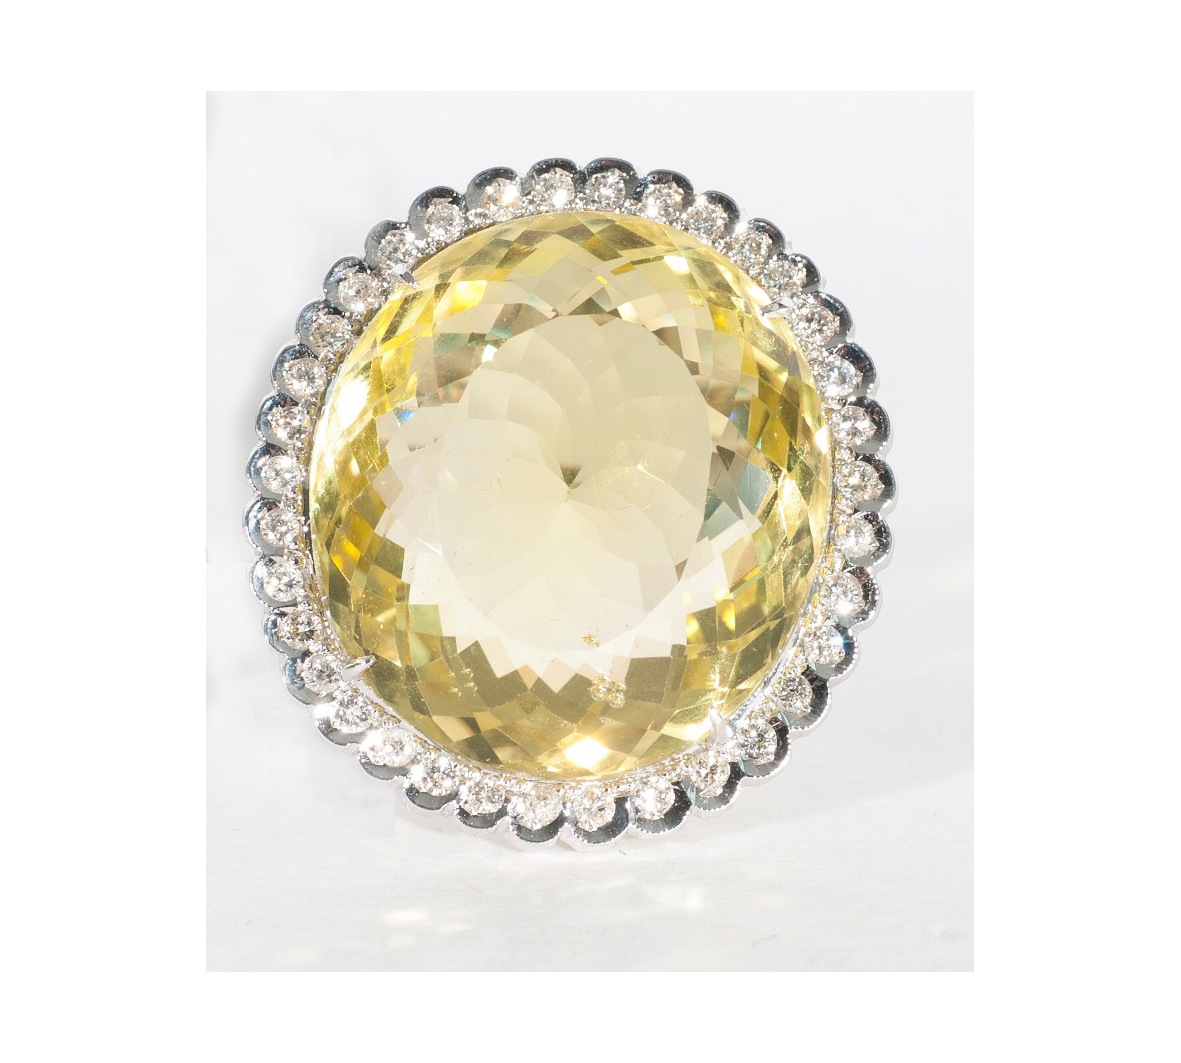 A large citrine diamond cocktailring